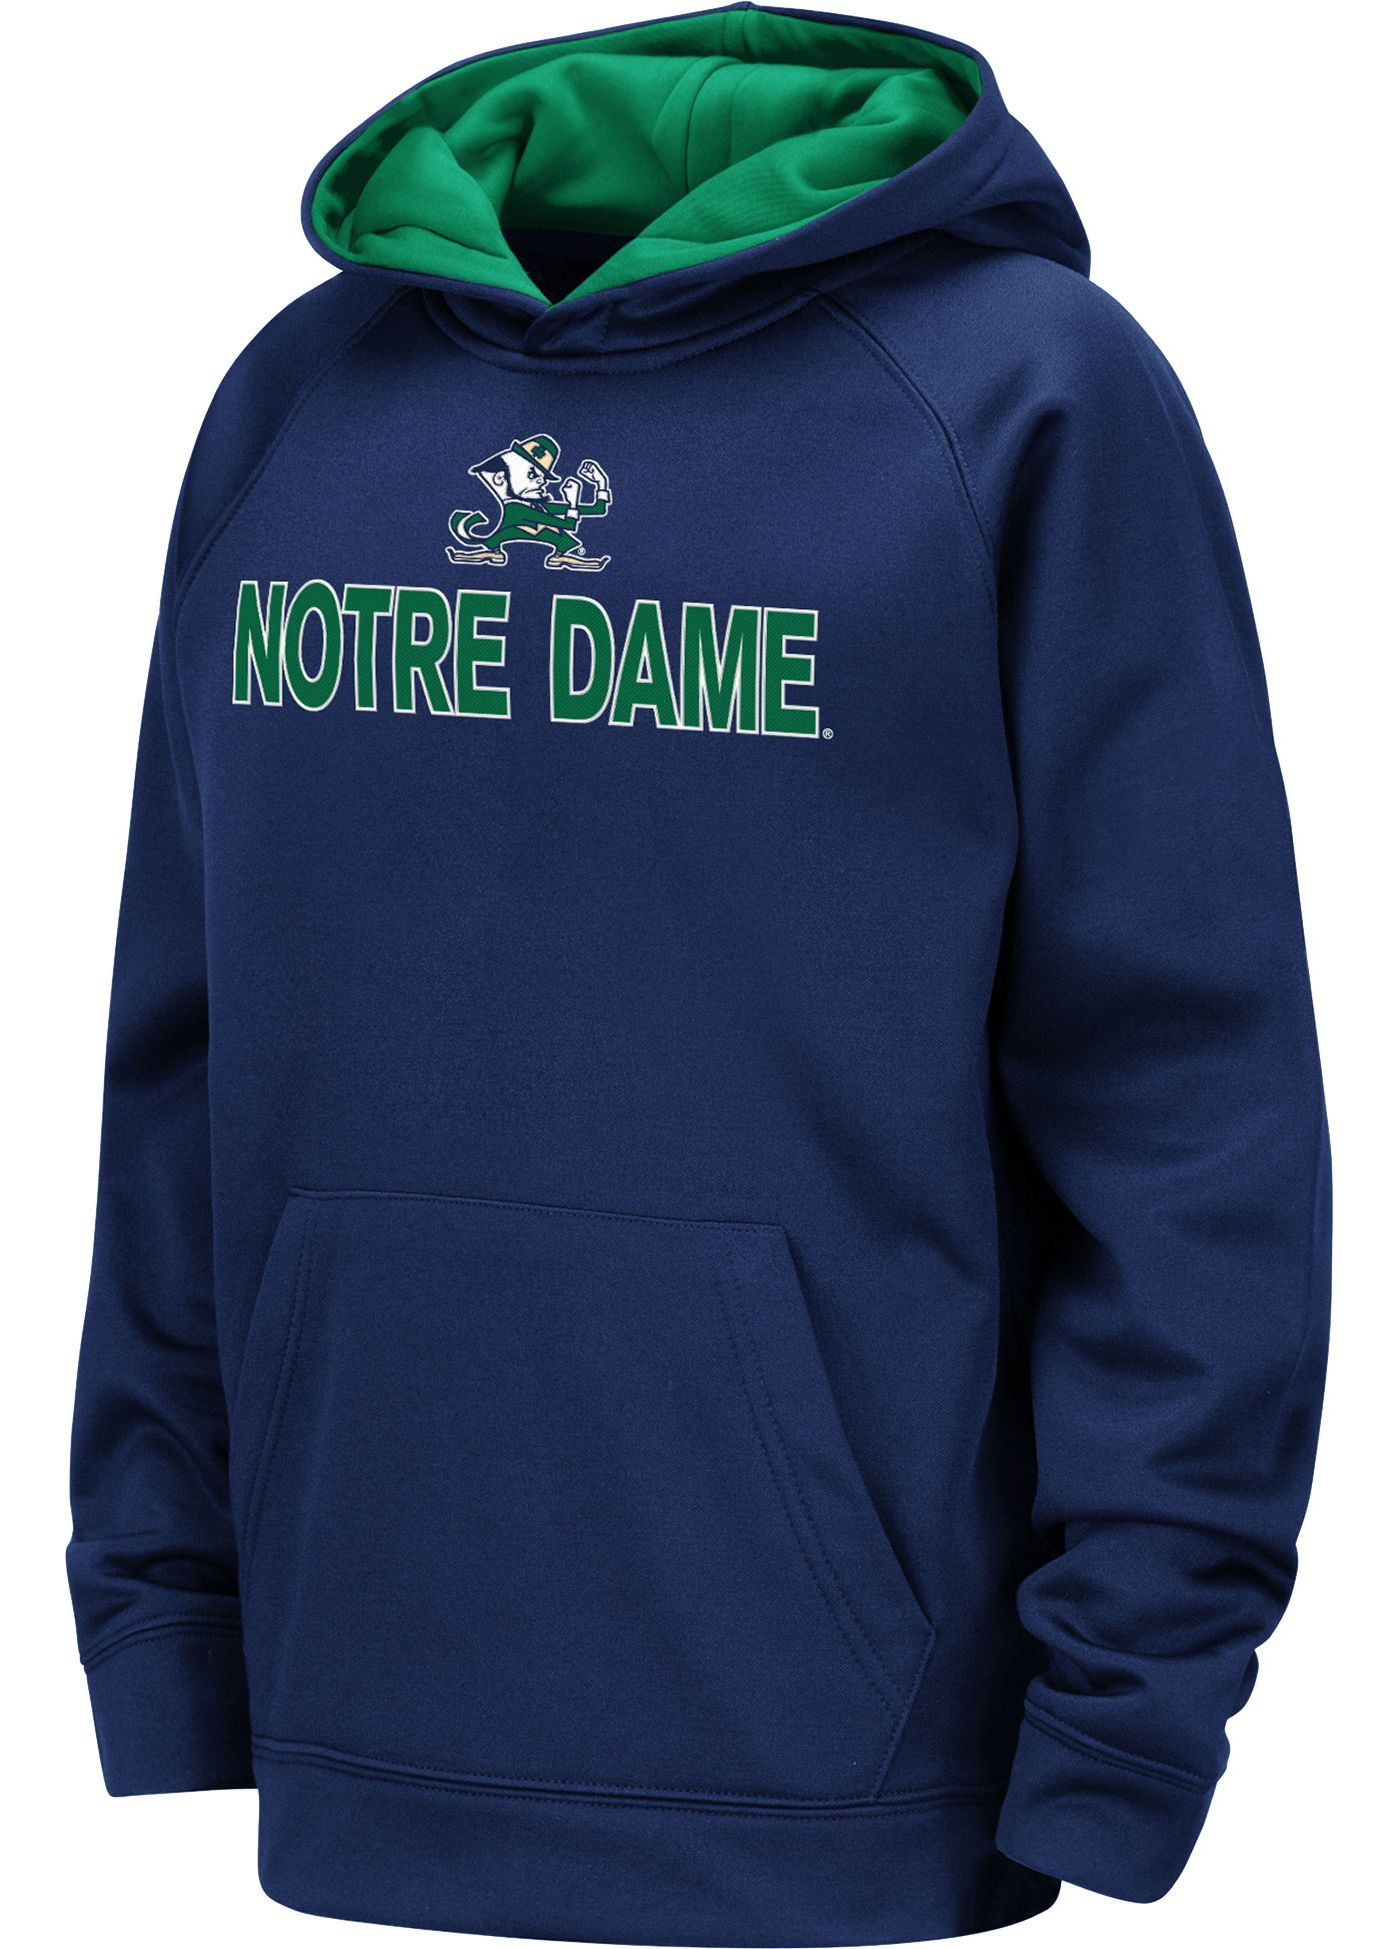 Colosseum Youth Notre Dame Fighting Irish Navy Pullover Hoodie